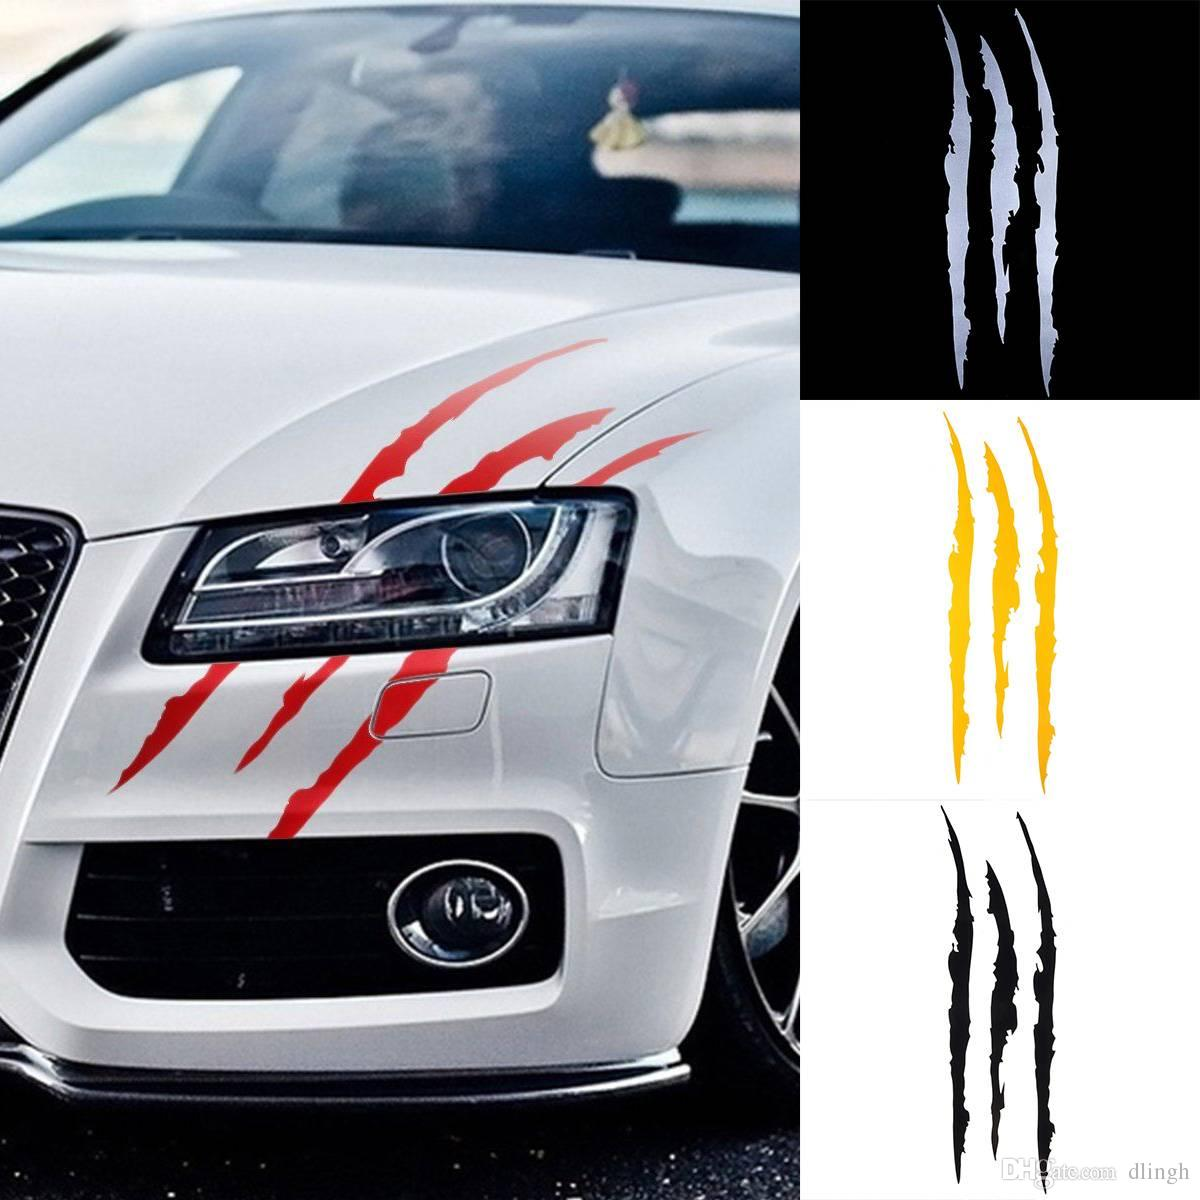 2019 auto car sticker reflective monster scratch stripe claw marks headlight decal 41cm12cm from dlingh 0 91 dhgate com